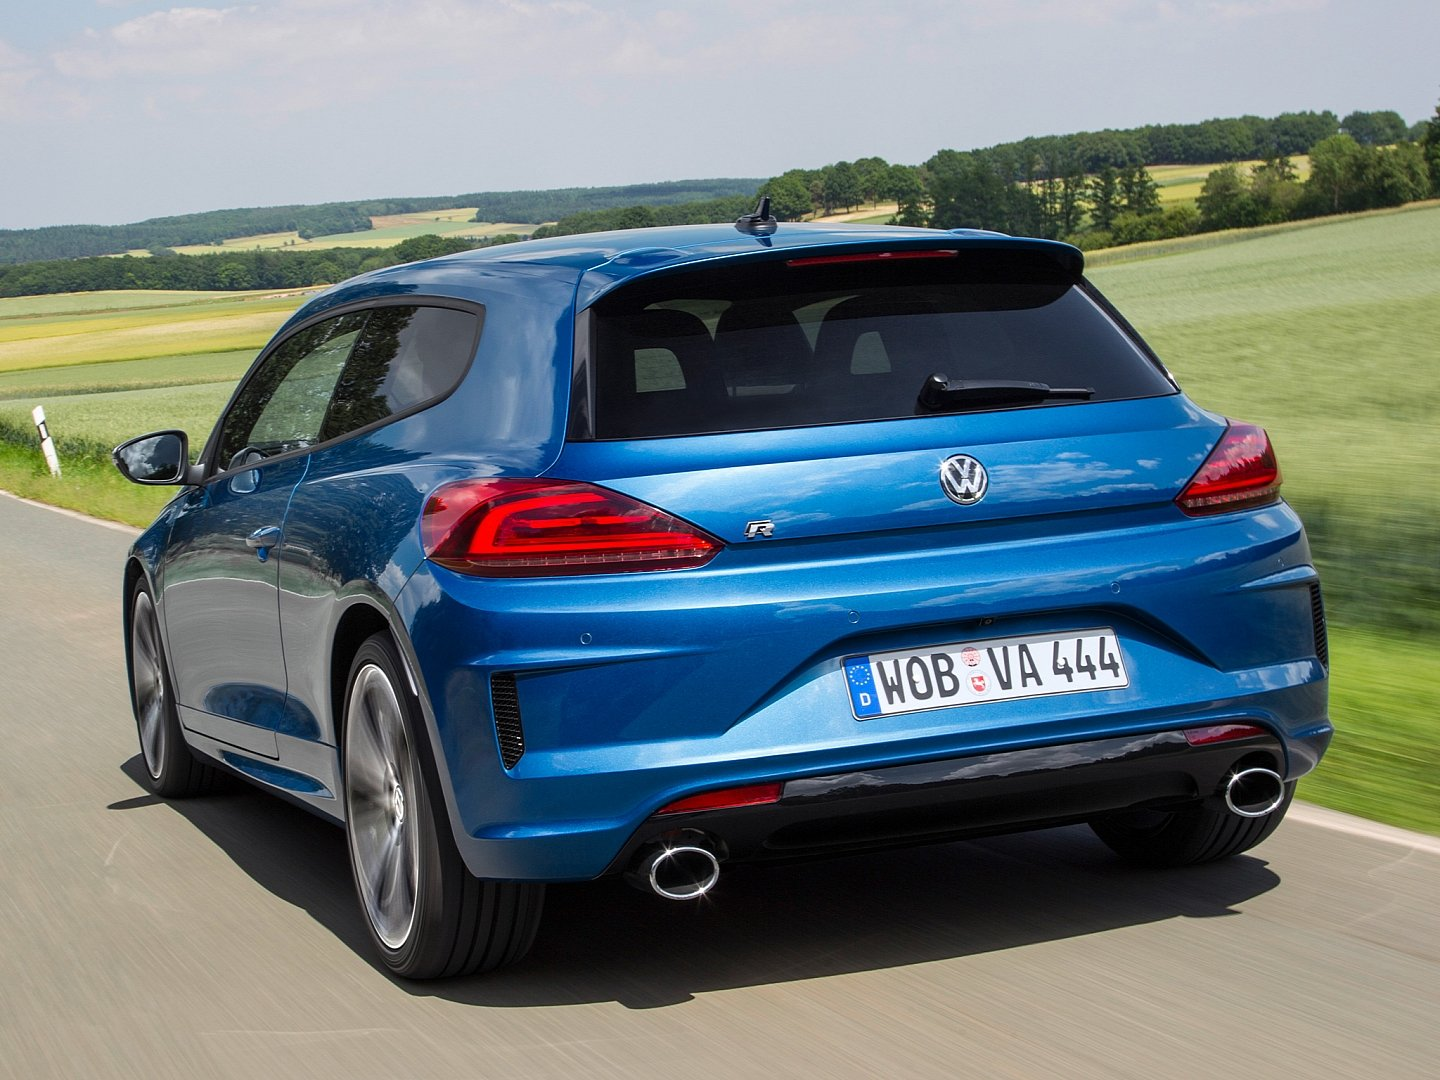 scirocco-radditional-20-ps-accelerates-06-seconds-faster-to-100-km-h-than-its-predecessor-1080p-7